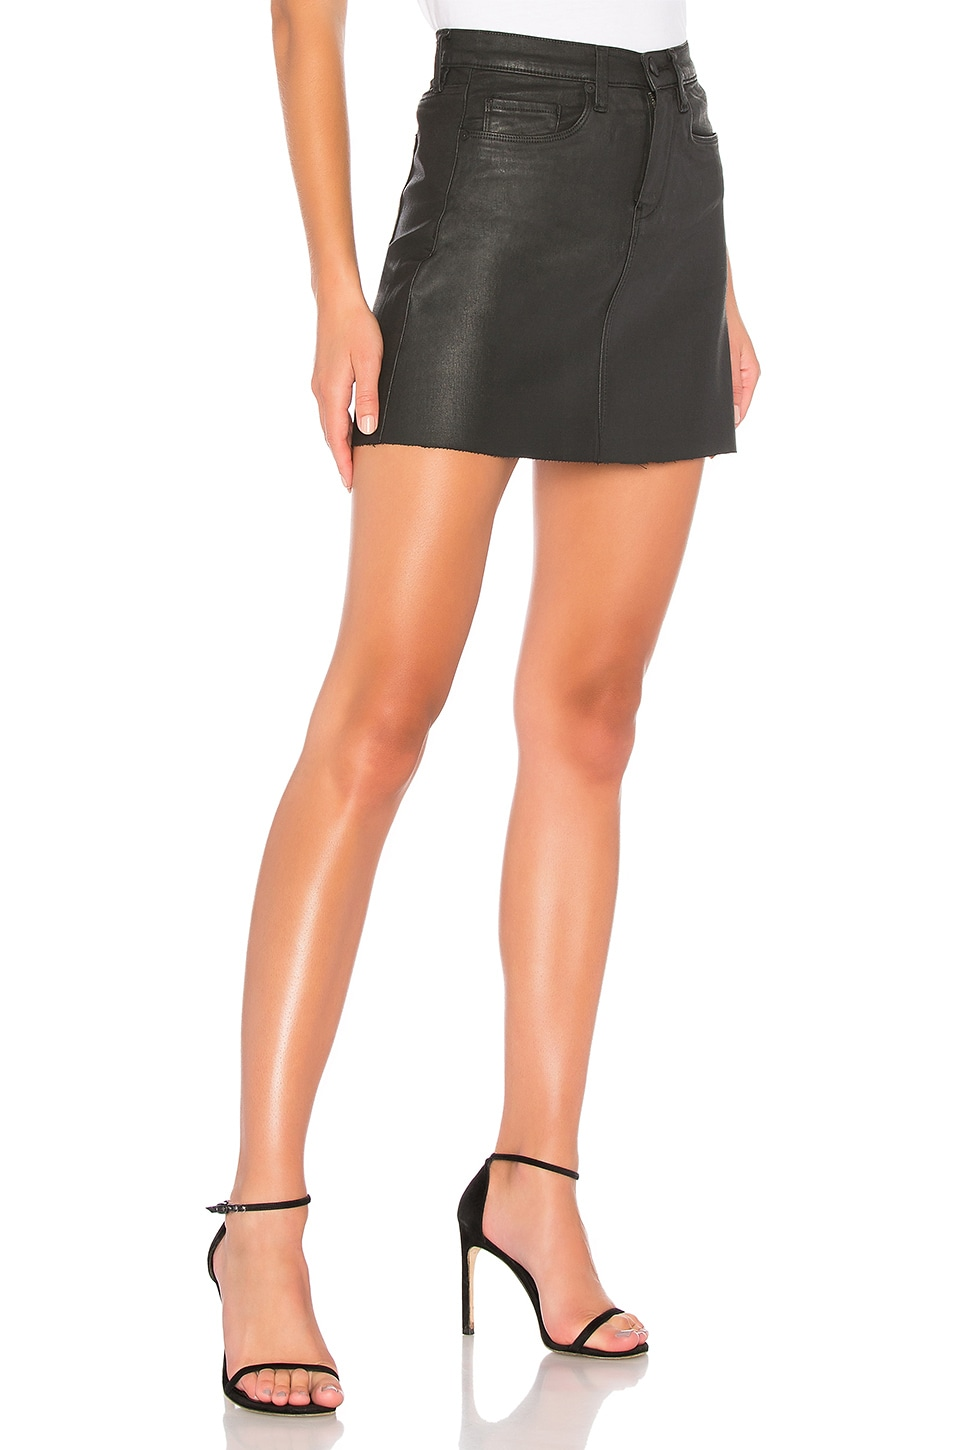 Frayed Edge Mini Skirt, view 2, click to view large image.